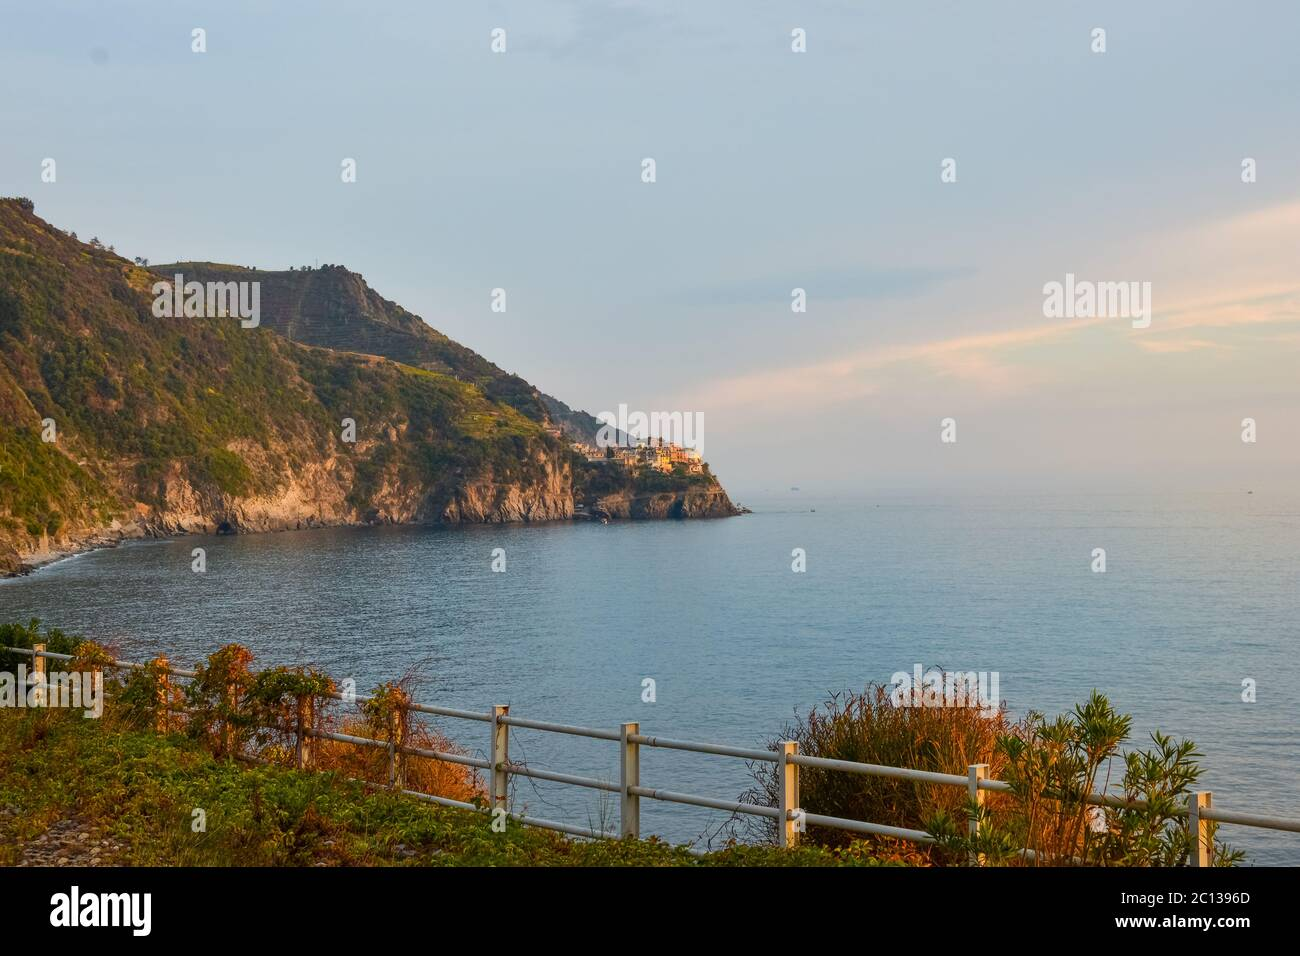 The coastline of Cinque Terre Italy and the Ligurian Sea, with the village of Corniglia in the distance as the sun sets in early Autumn Stock Photo